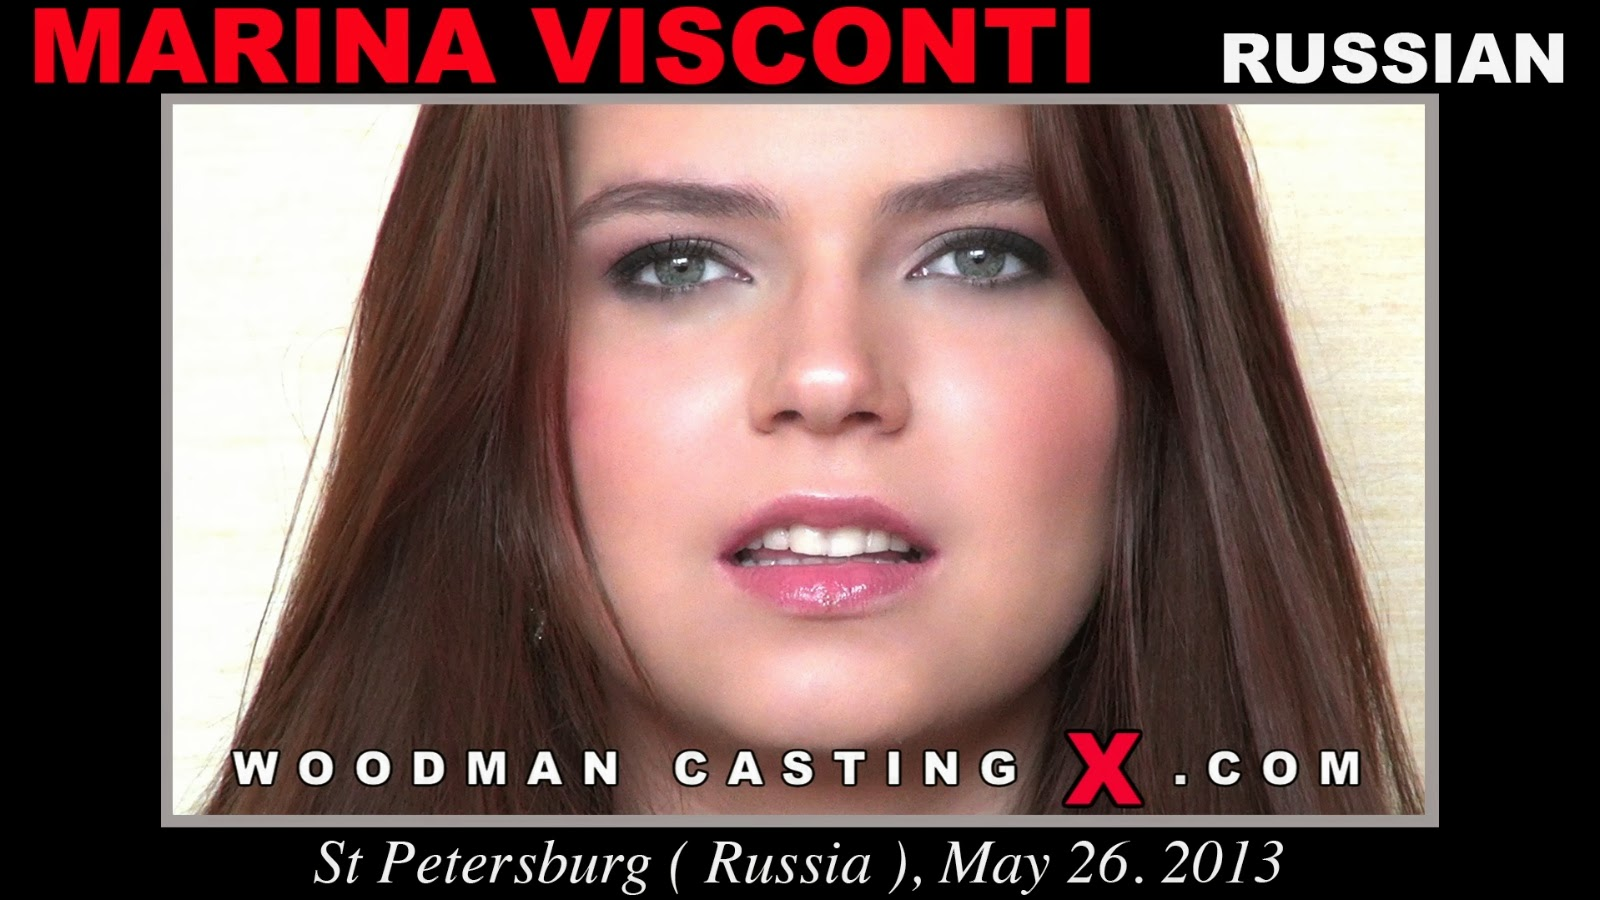 Woodman casting in russia 12 фотография